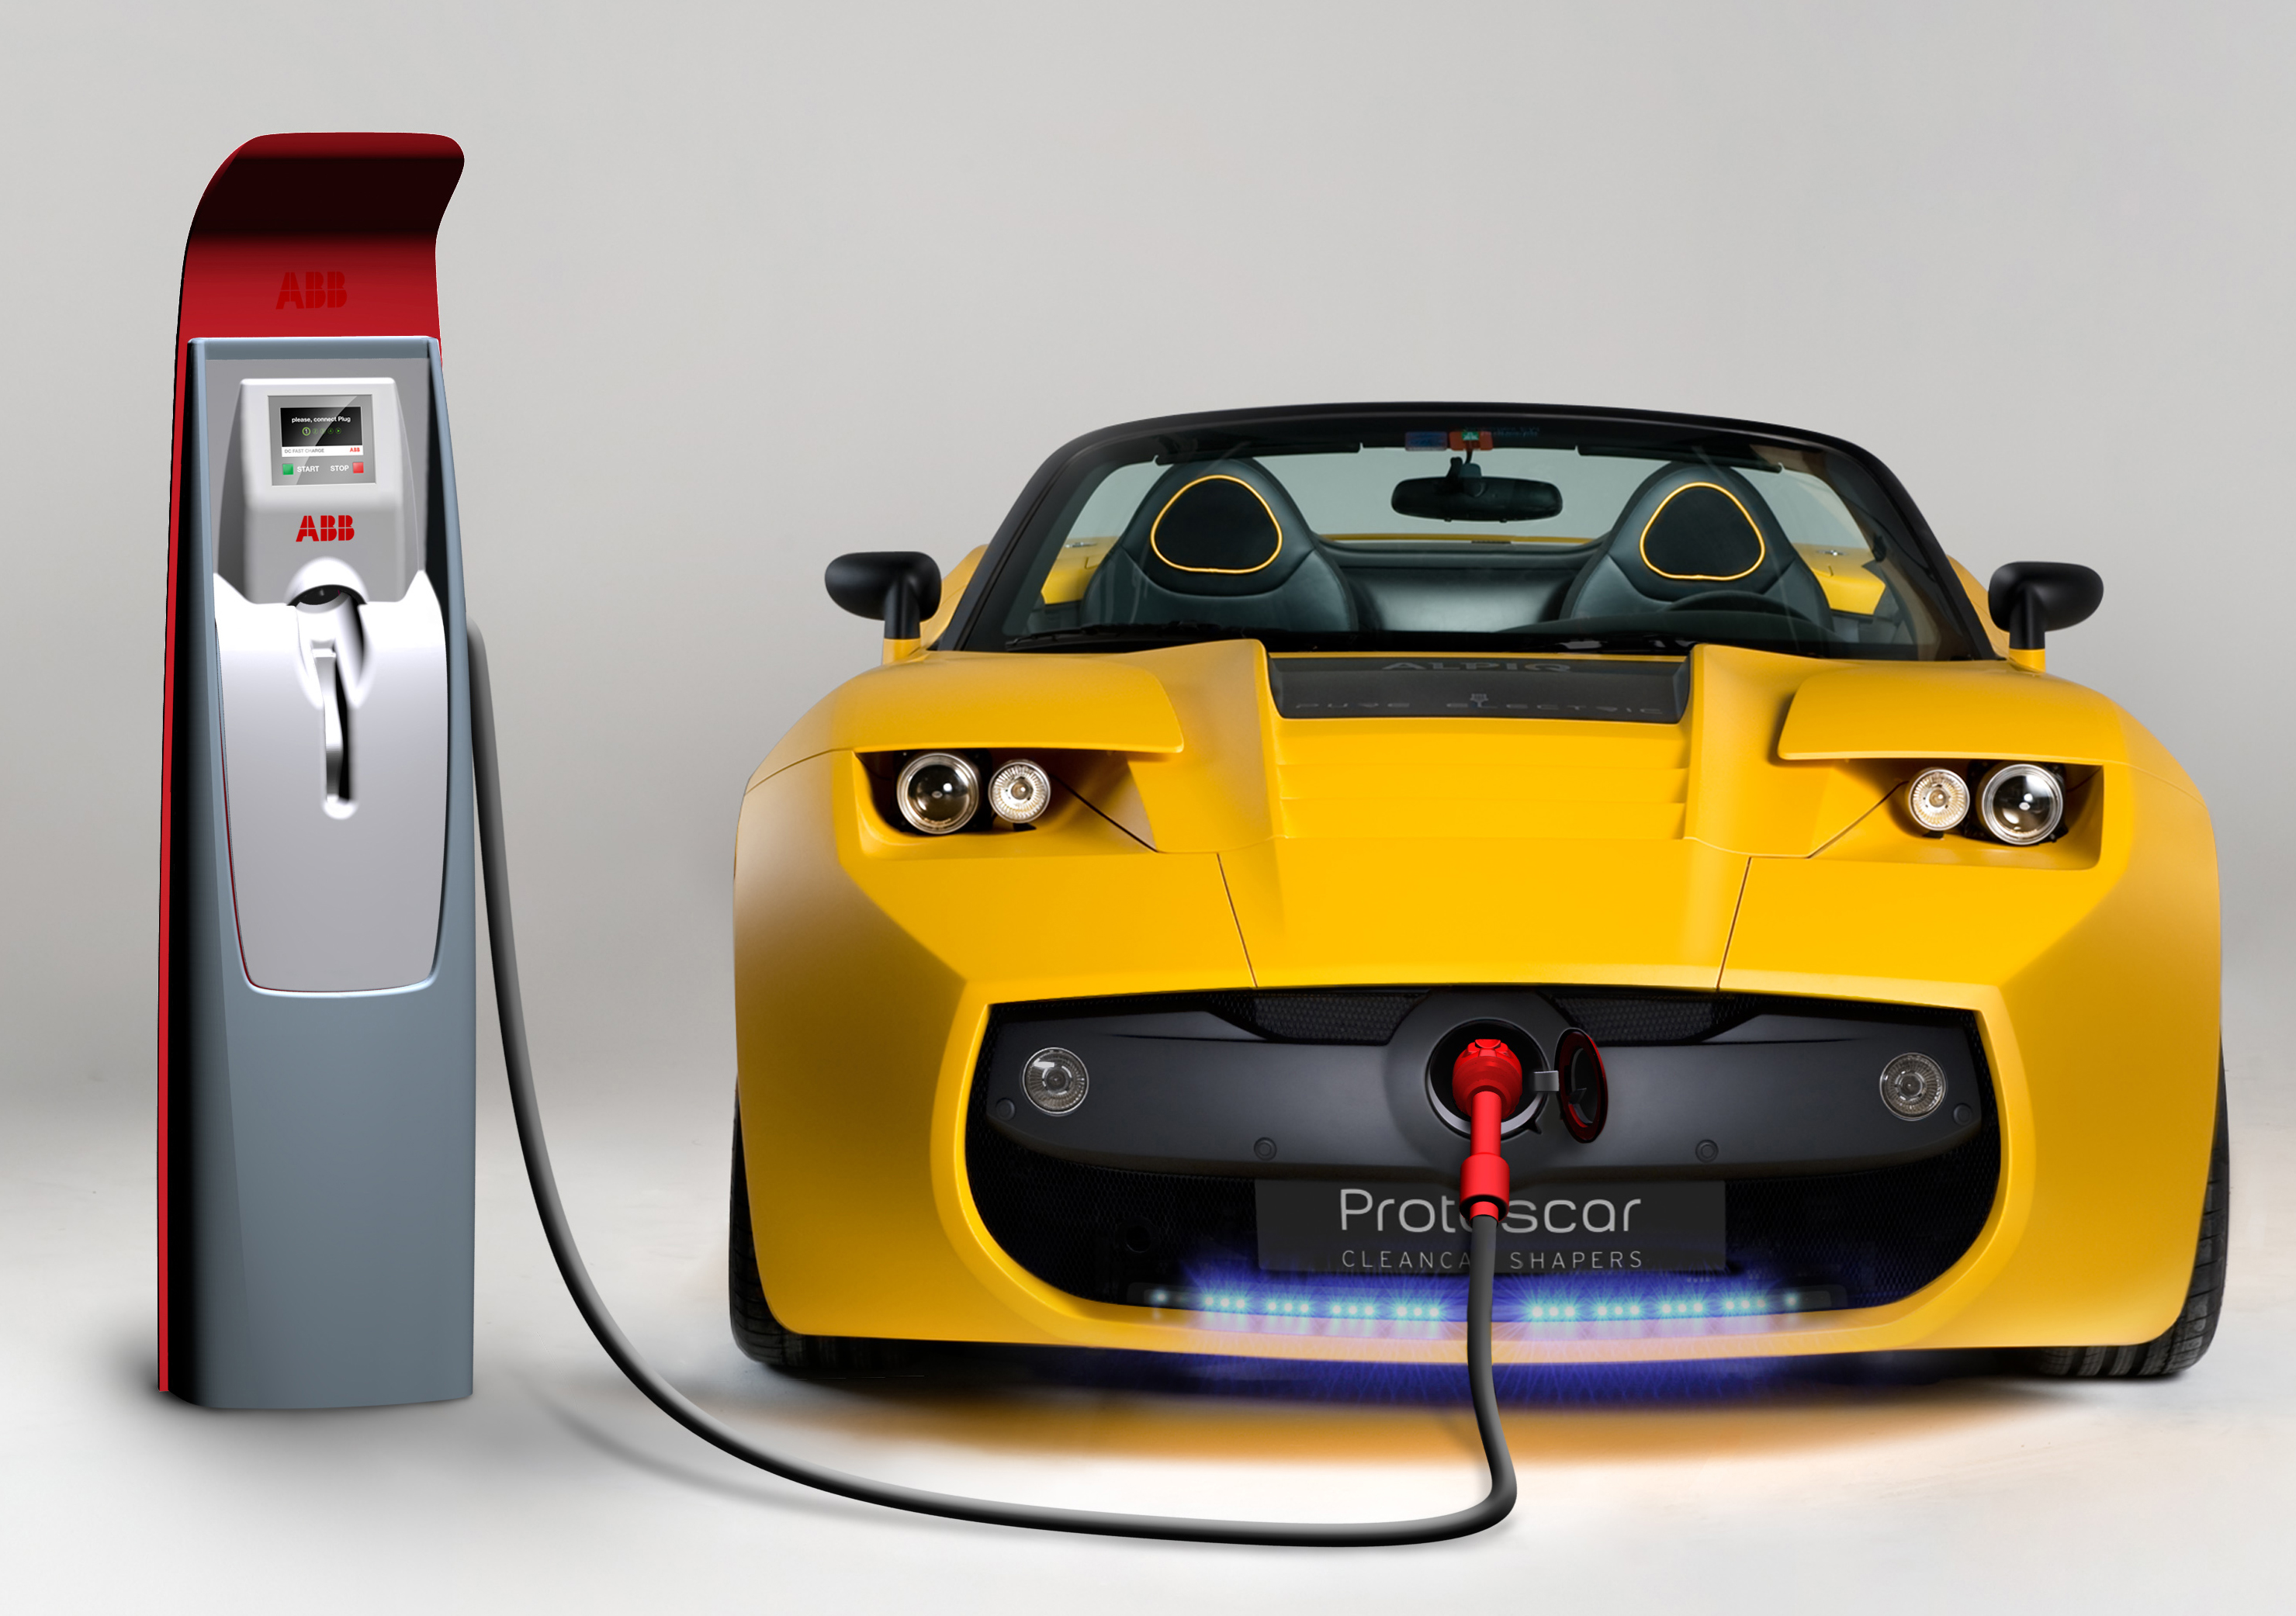 Electic Car Battery Prices